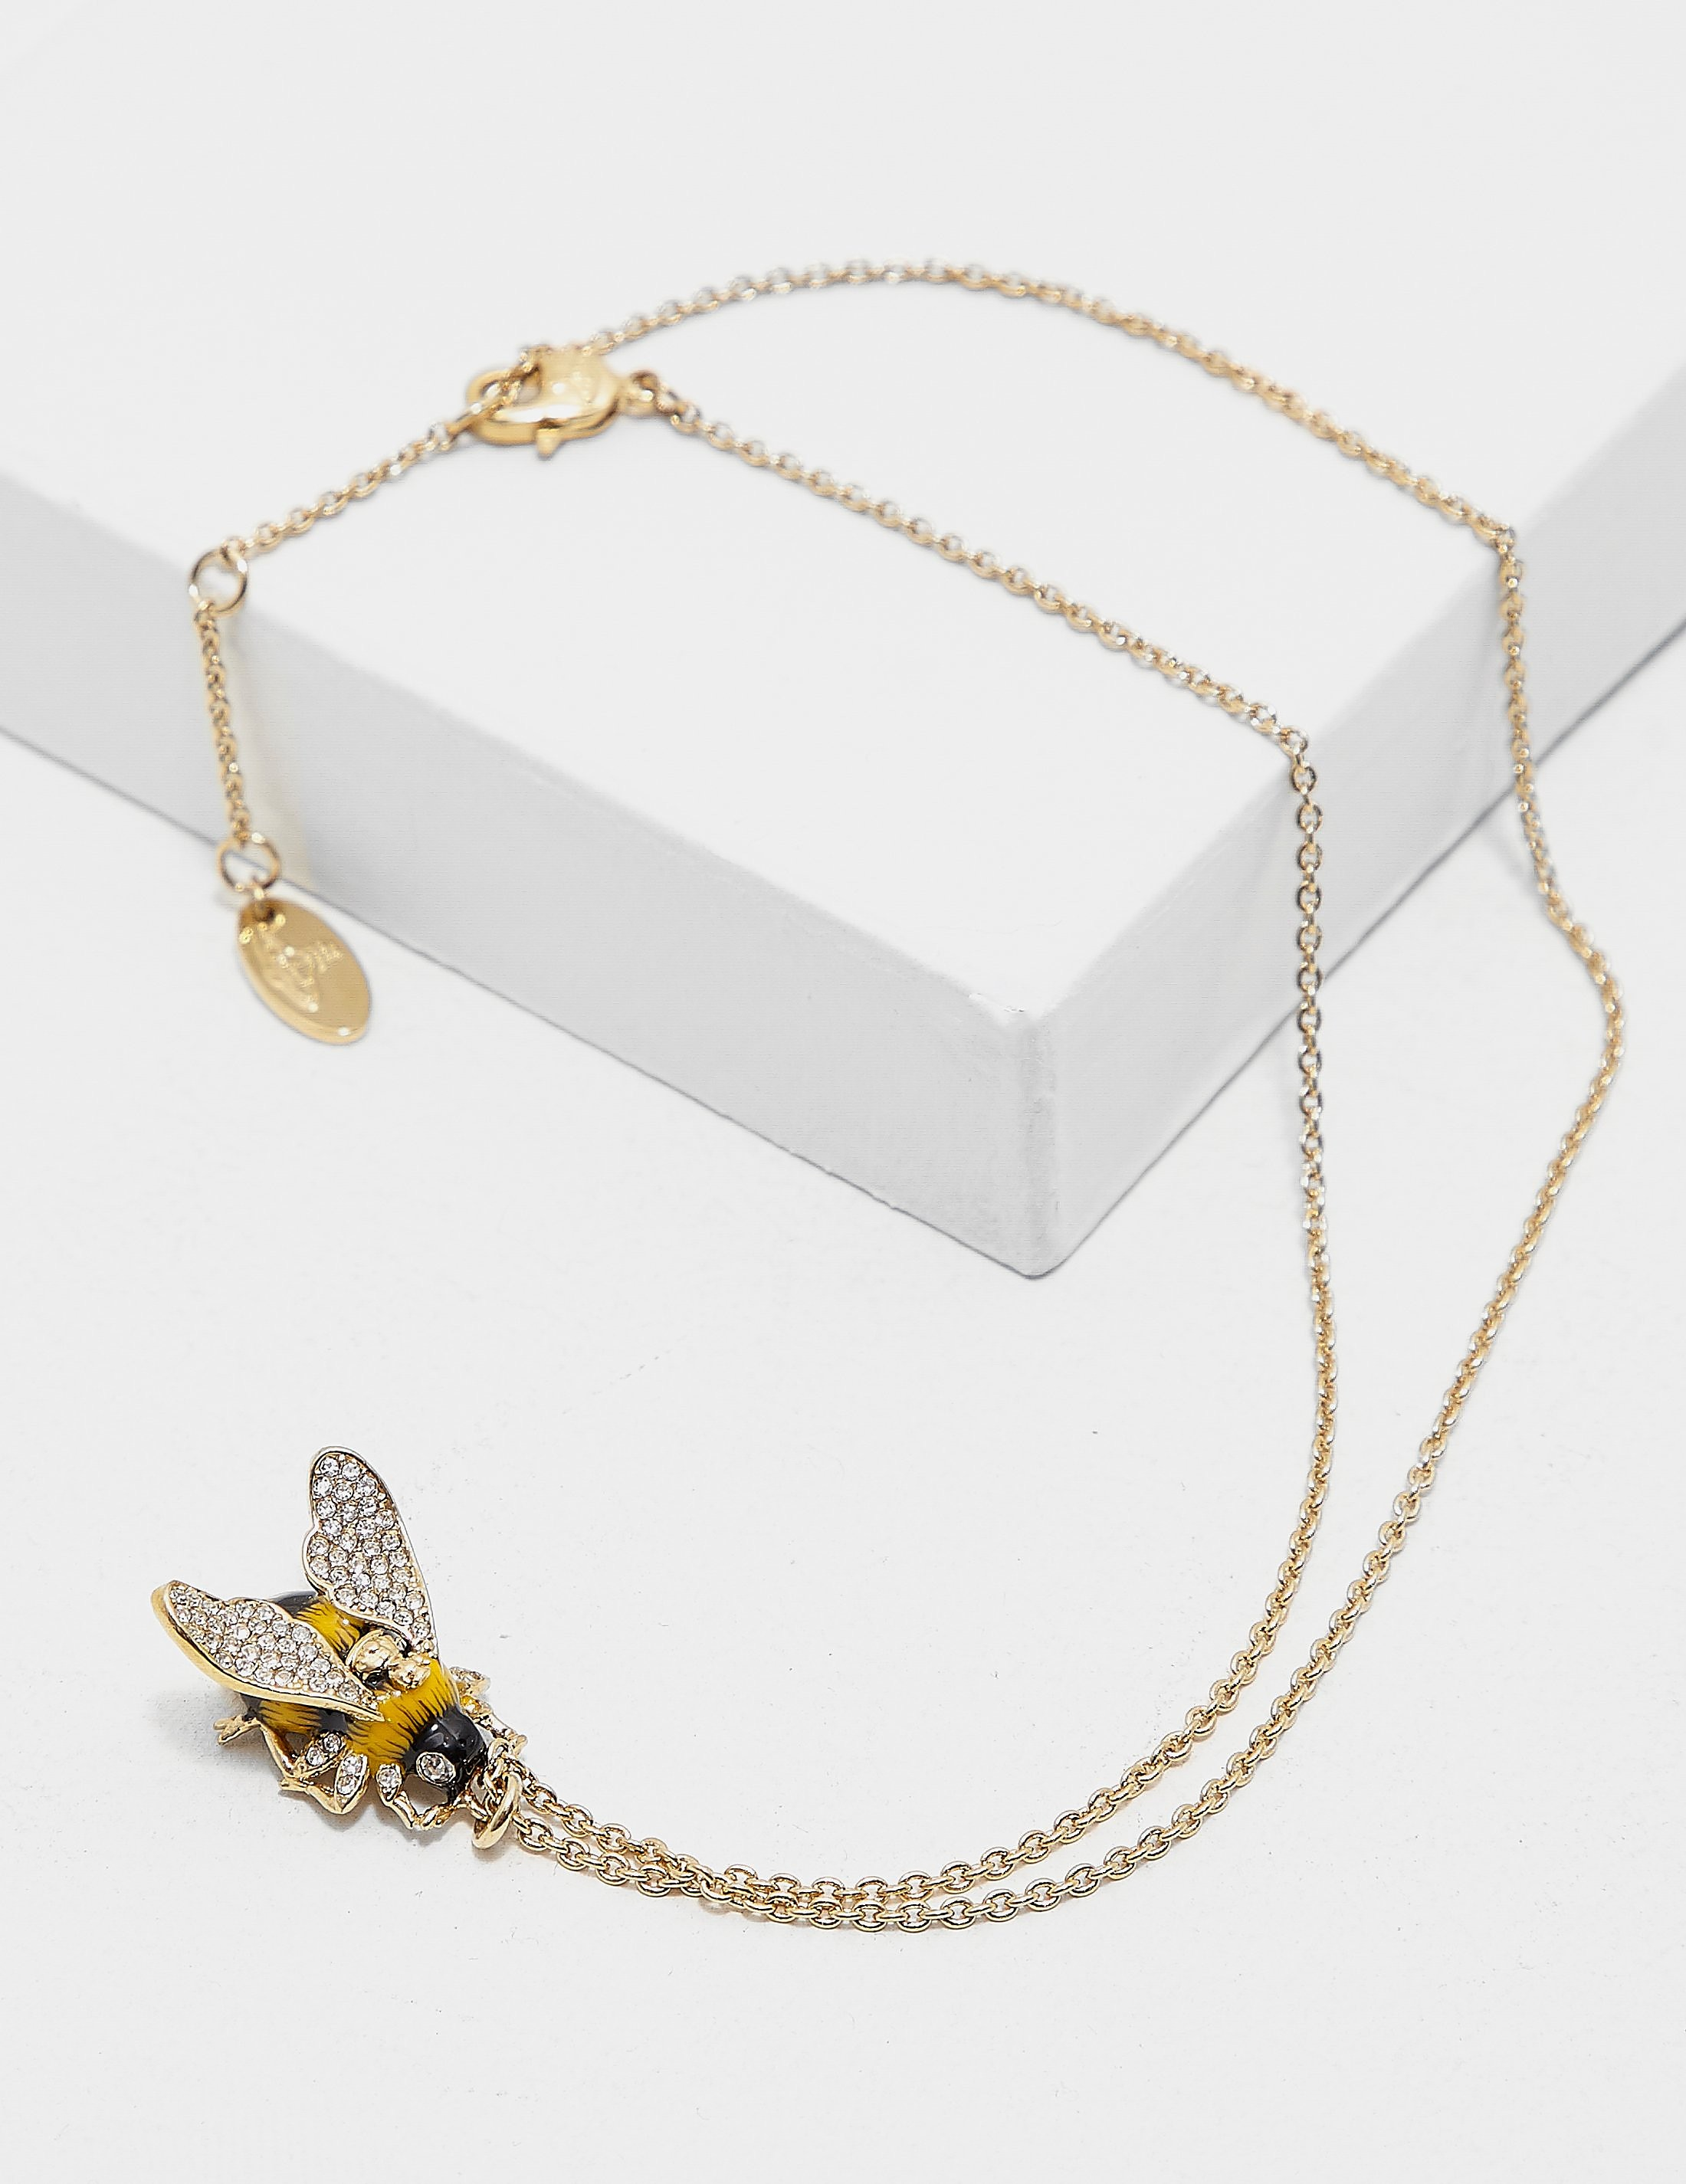 Vivienne Westwood Bumble Bee Necklace